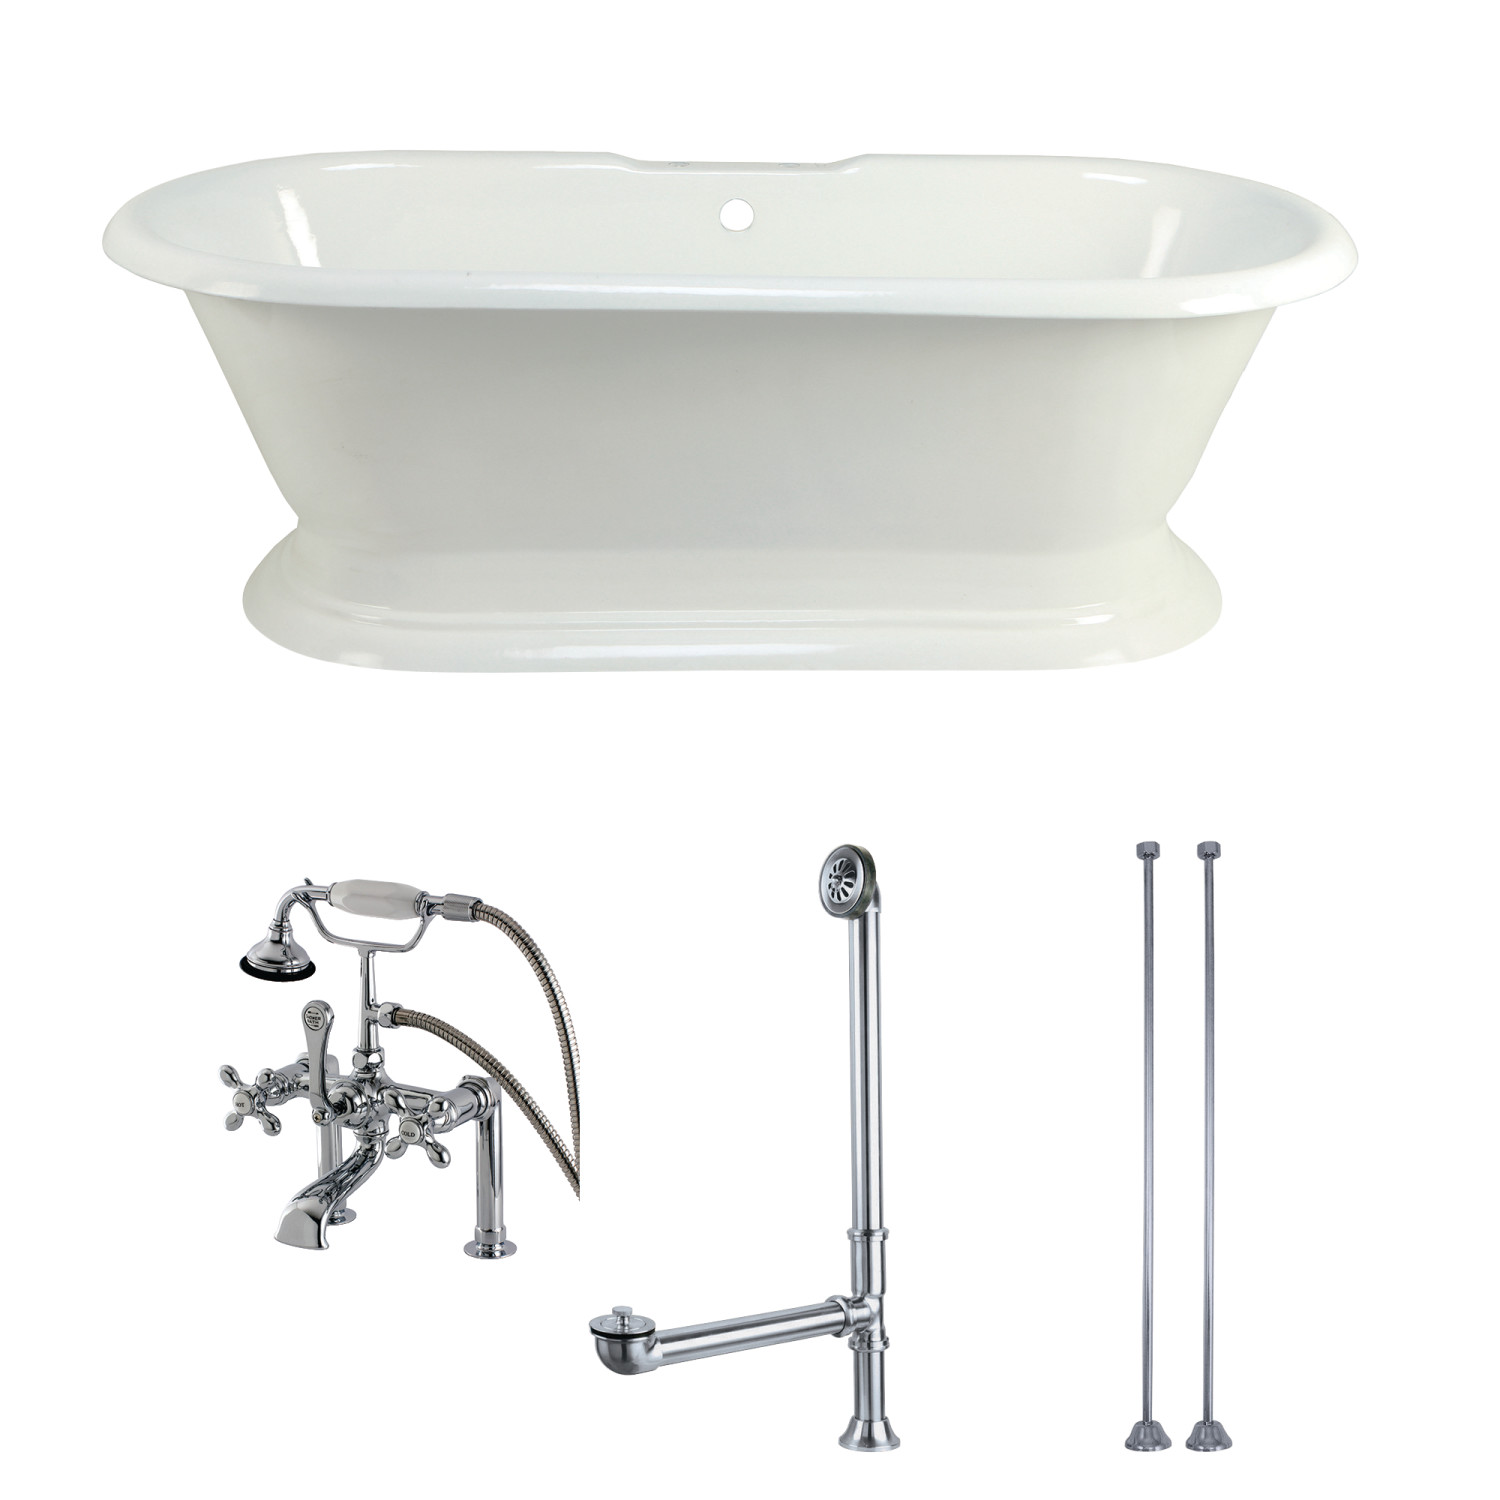 Aqua Eden 67-Inch Acrylic Pedestal Tub with Faucet Drain and Supply ...